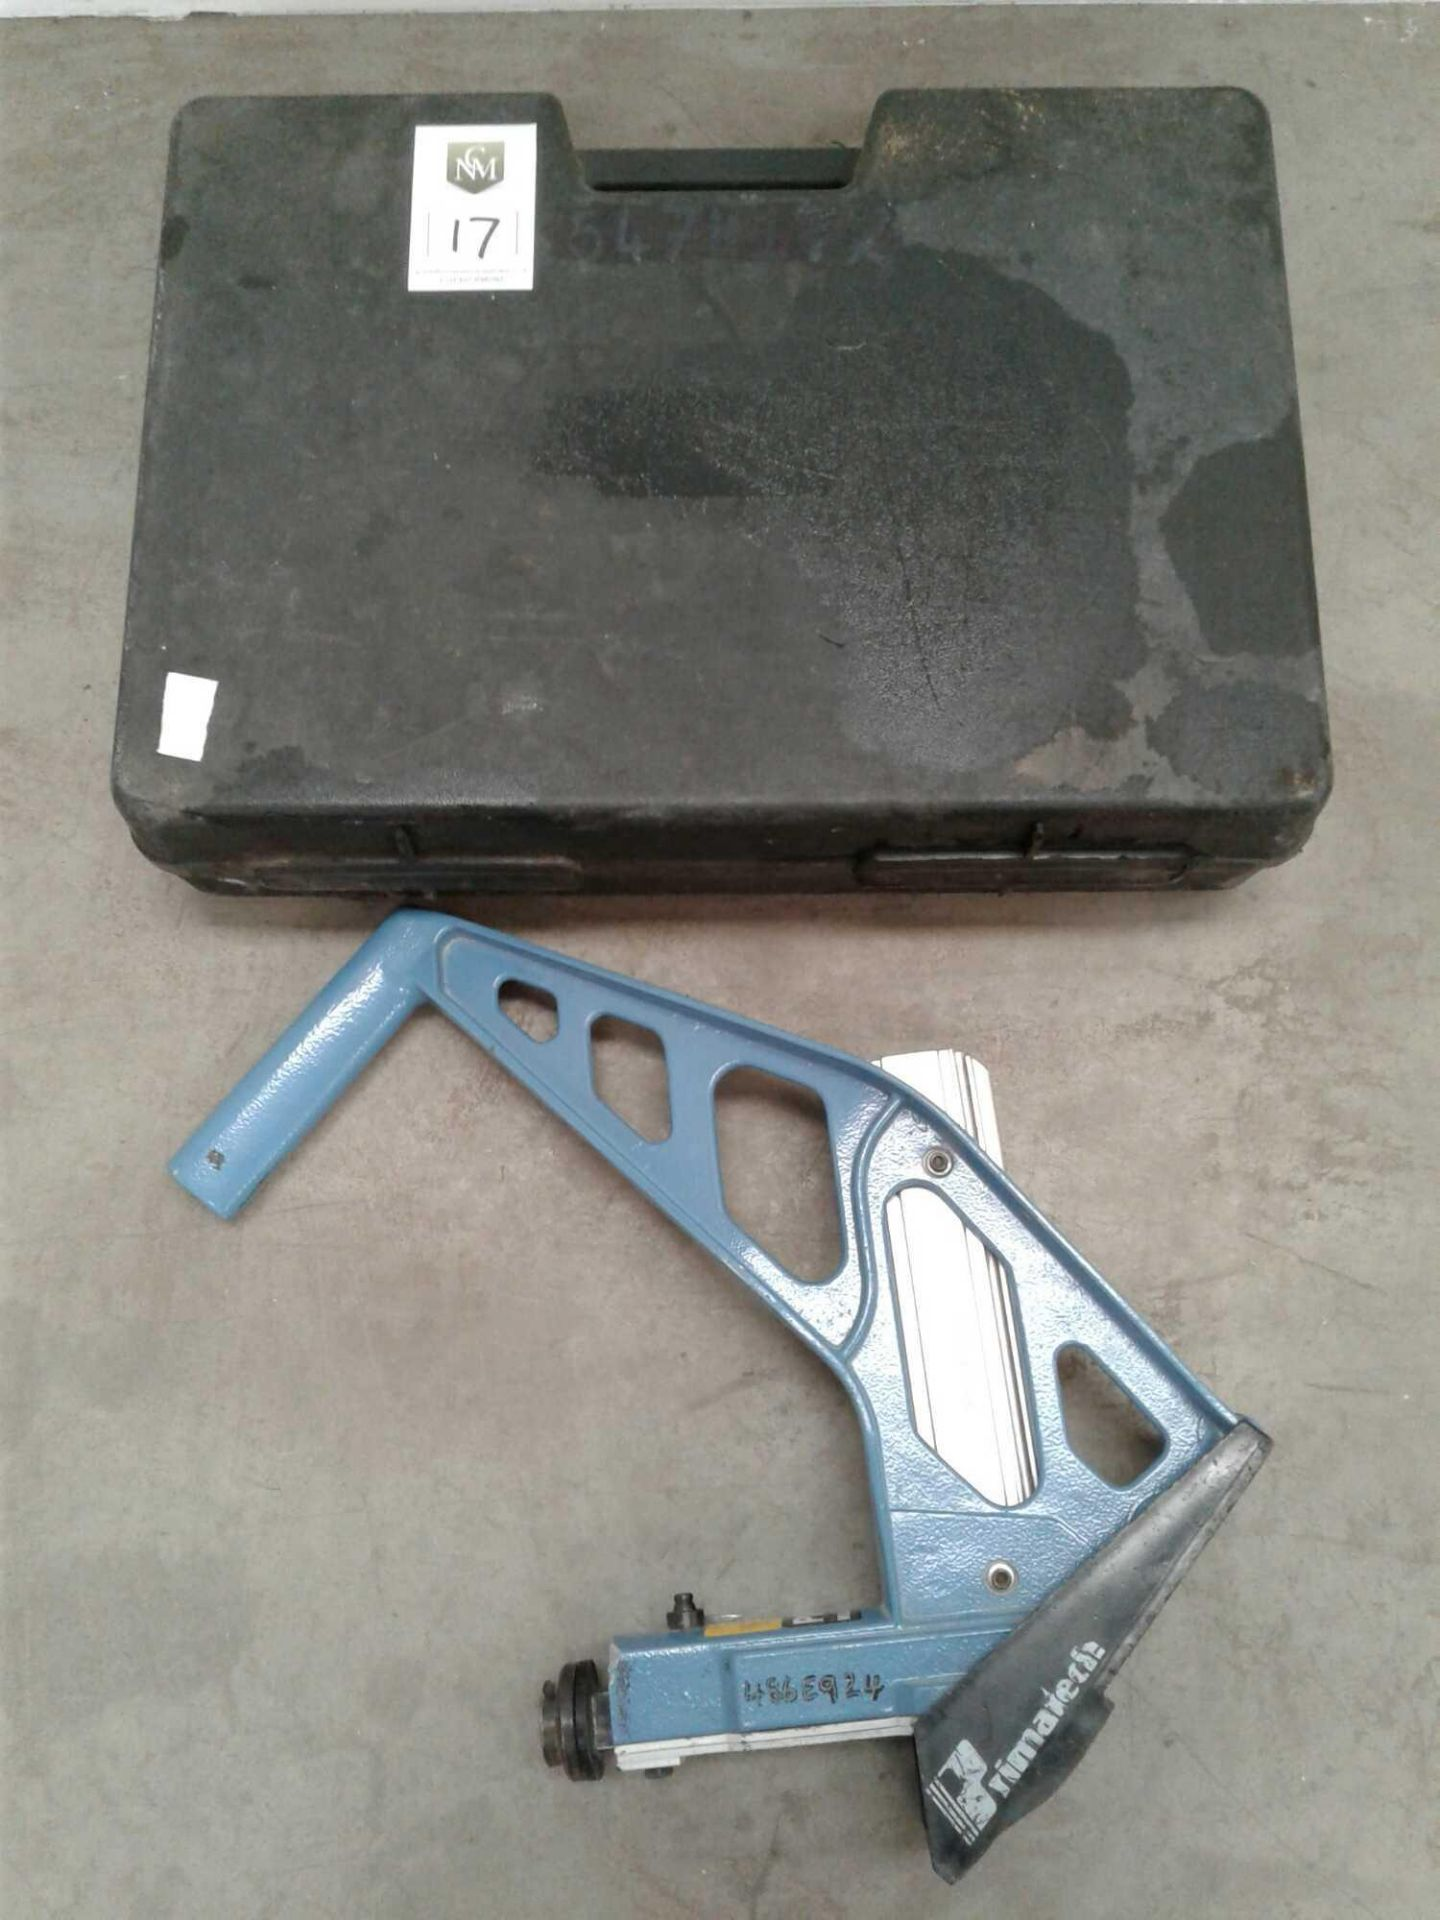 Lot 17 - Primatech Nailer